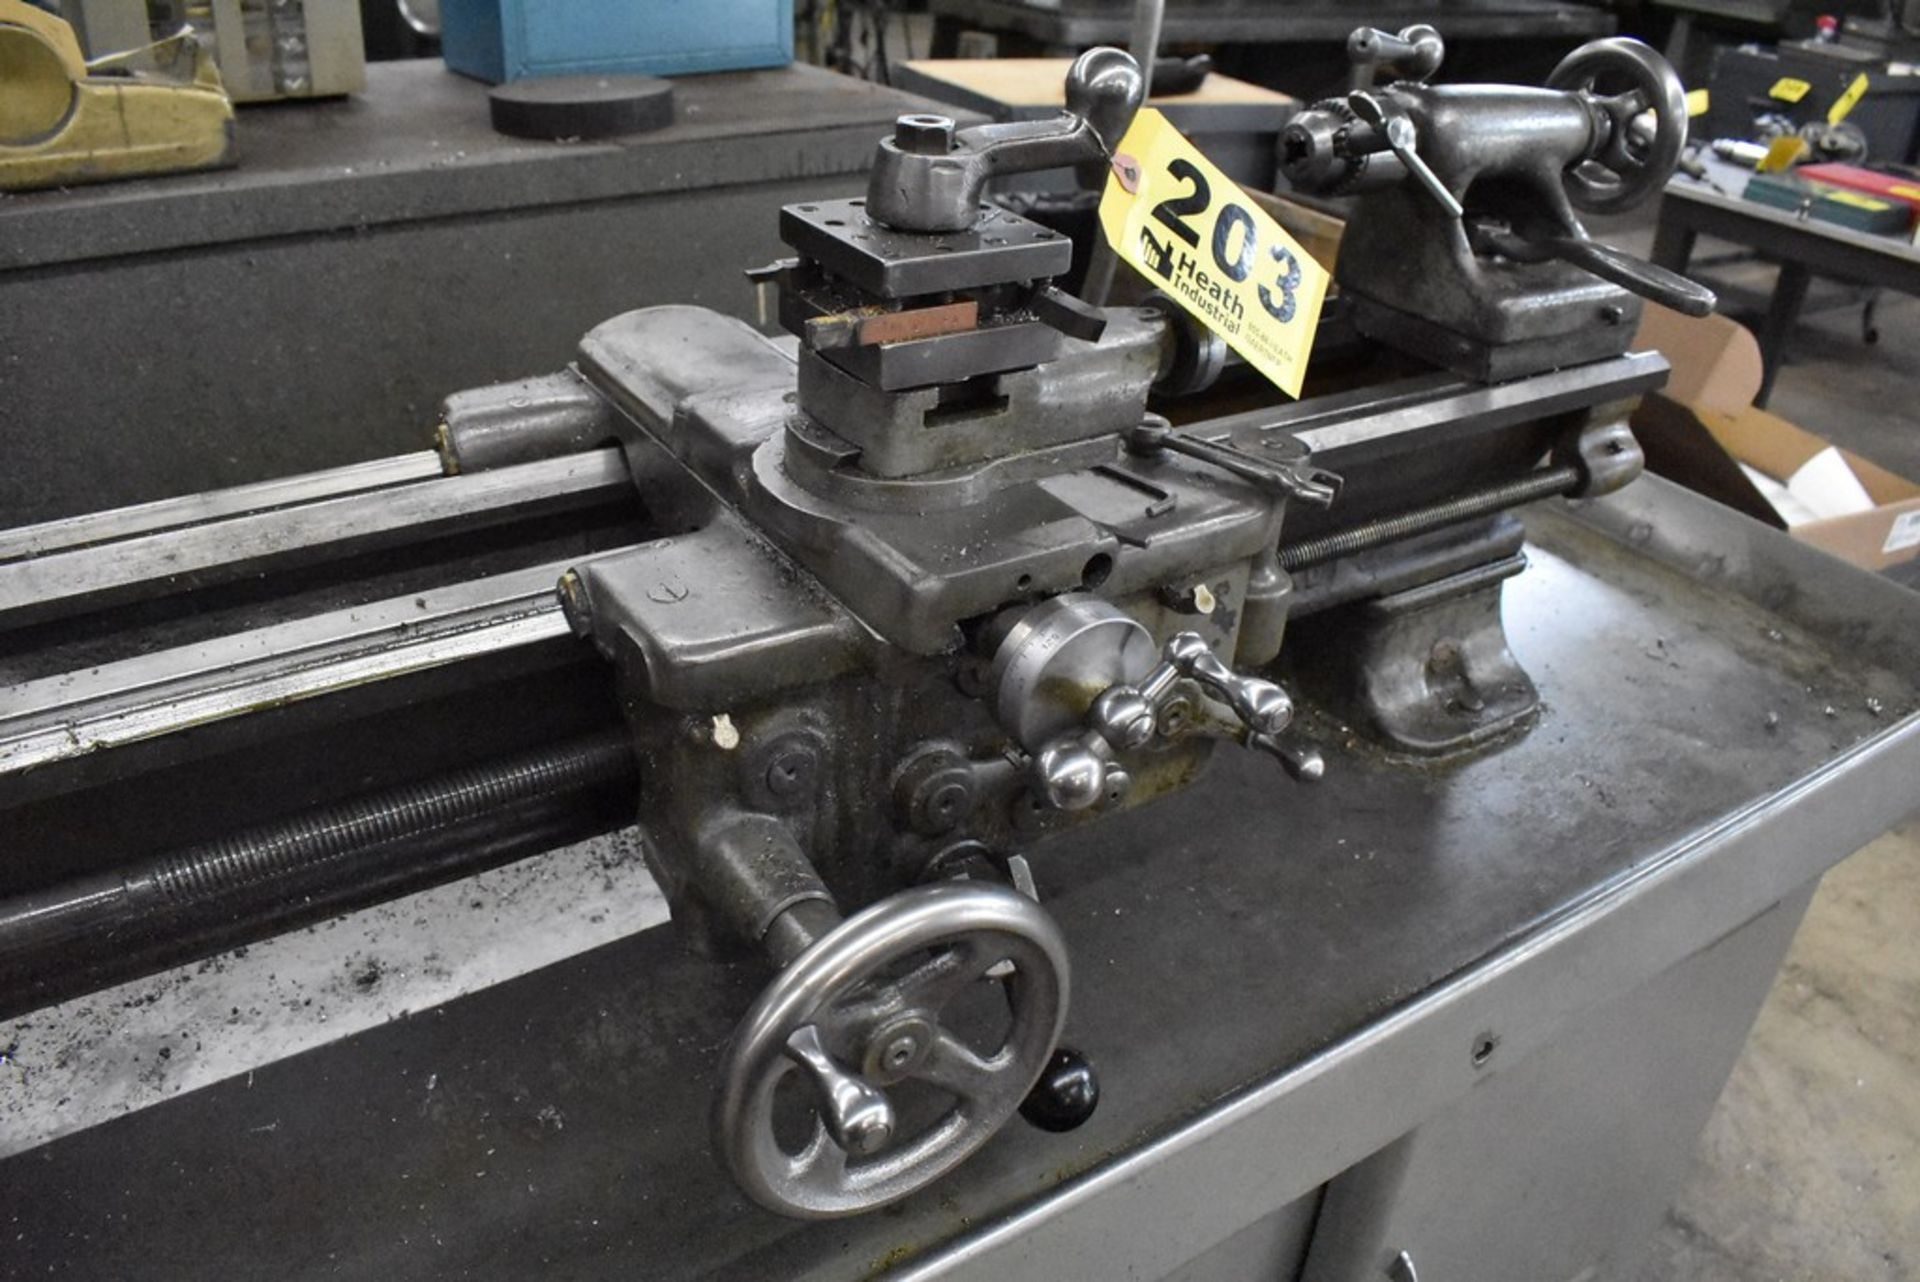 """SOUTH BEND 10""""X30"""" CABINET BASE TOOL ROOM LATHE, S/N 16711RKX12, WITH COLLET CLOSER, 4-WAY TOOL - Image 10 of 13"""